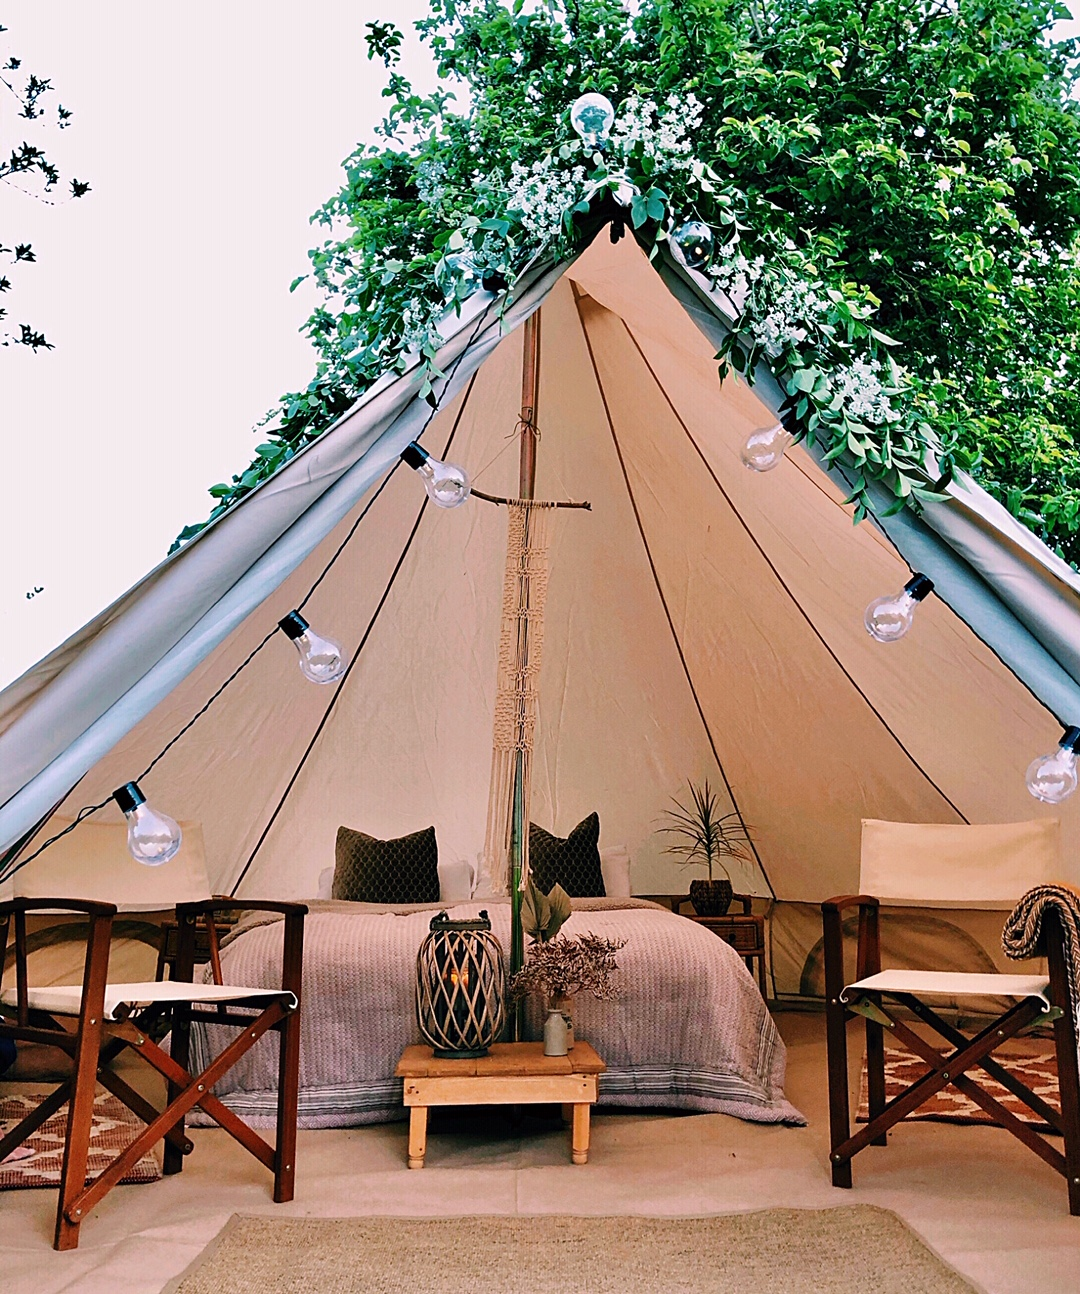 Luxury bell tent hire - Sussex, Kent & Surrey